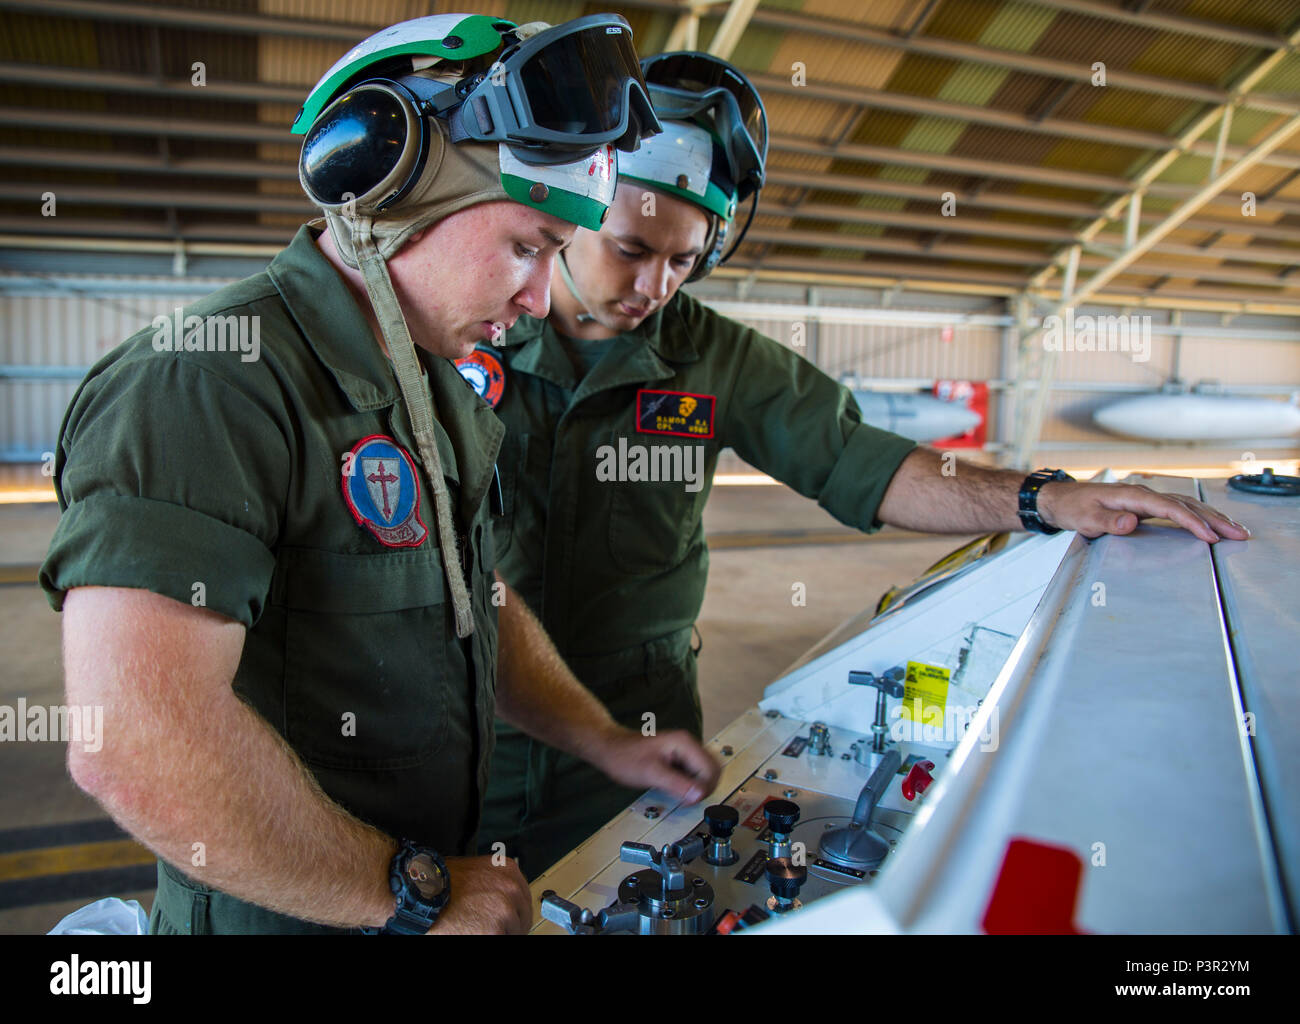 Lance Cpl. James Headrick, an airframe Marine with Marine Fighter Attack Squadron (VMFA) 122, demonstrates how to operate an NC-10 Hydraulic Generator for Cpl. Robert Ramos, Marine Aviation Logisitsics Squadron (MALS) 12 airframes, at Royal Australian Air Force Base Tindal, Australia, July 25, 2016. VMFA-122 traveled to RAAF Base Tindal for the first time to participate in Pitch Black 2016 and unit level training known as Southern Frontier. Pitch Black affords Marines with VMFA-122 the opportunity to integrate and increase interoperability with regional joint and coalition partners, while deve - Stock Image